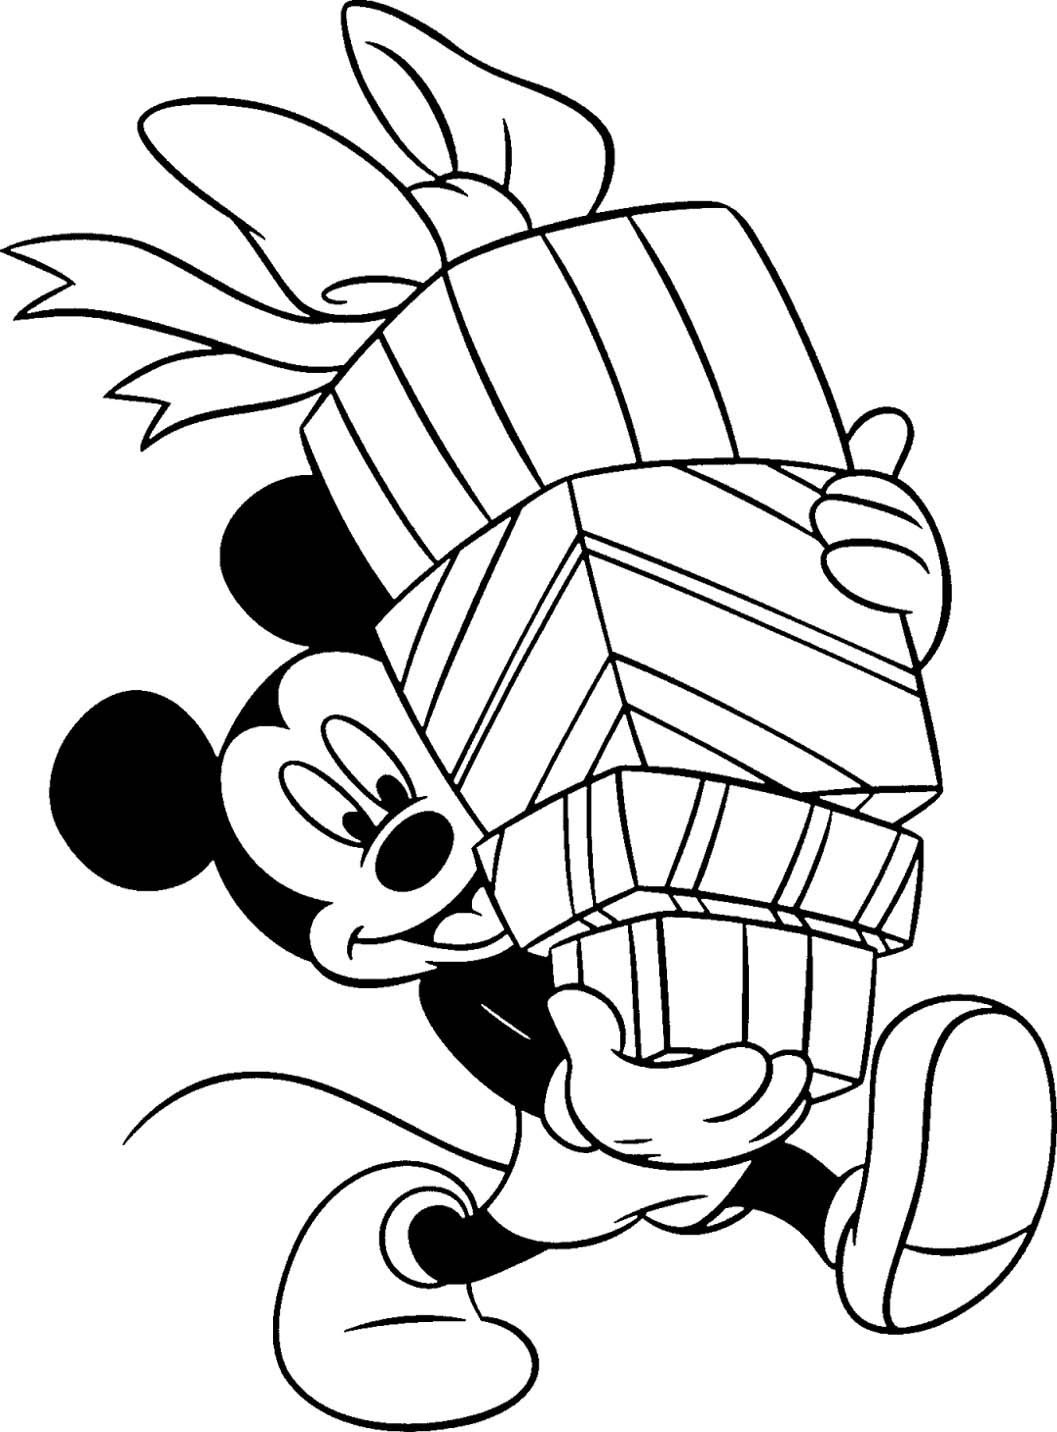 Mickey Mouse Vase Of 17 Awesome Mouse Coloring Page Oldmint Info Pertaining to Minnie Mouse Coloring Pages Luxury Cool Vases Flower Vase Coloring